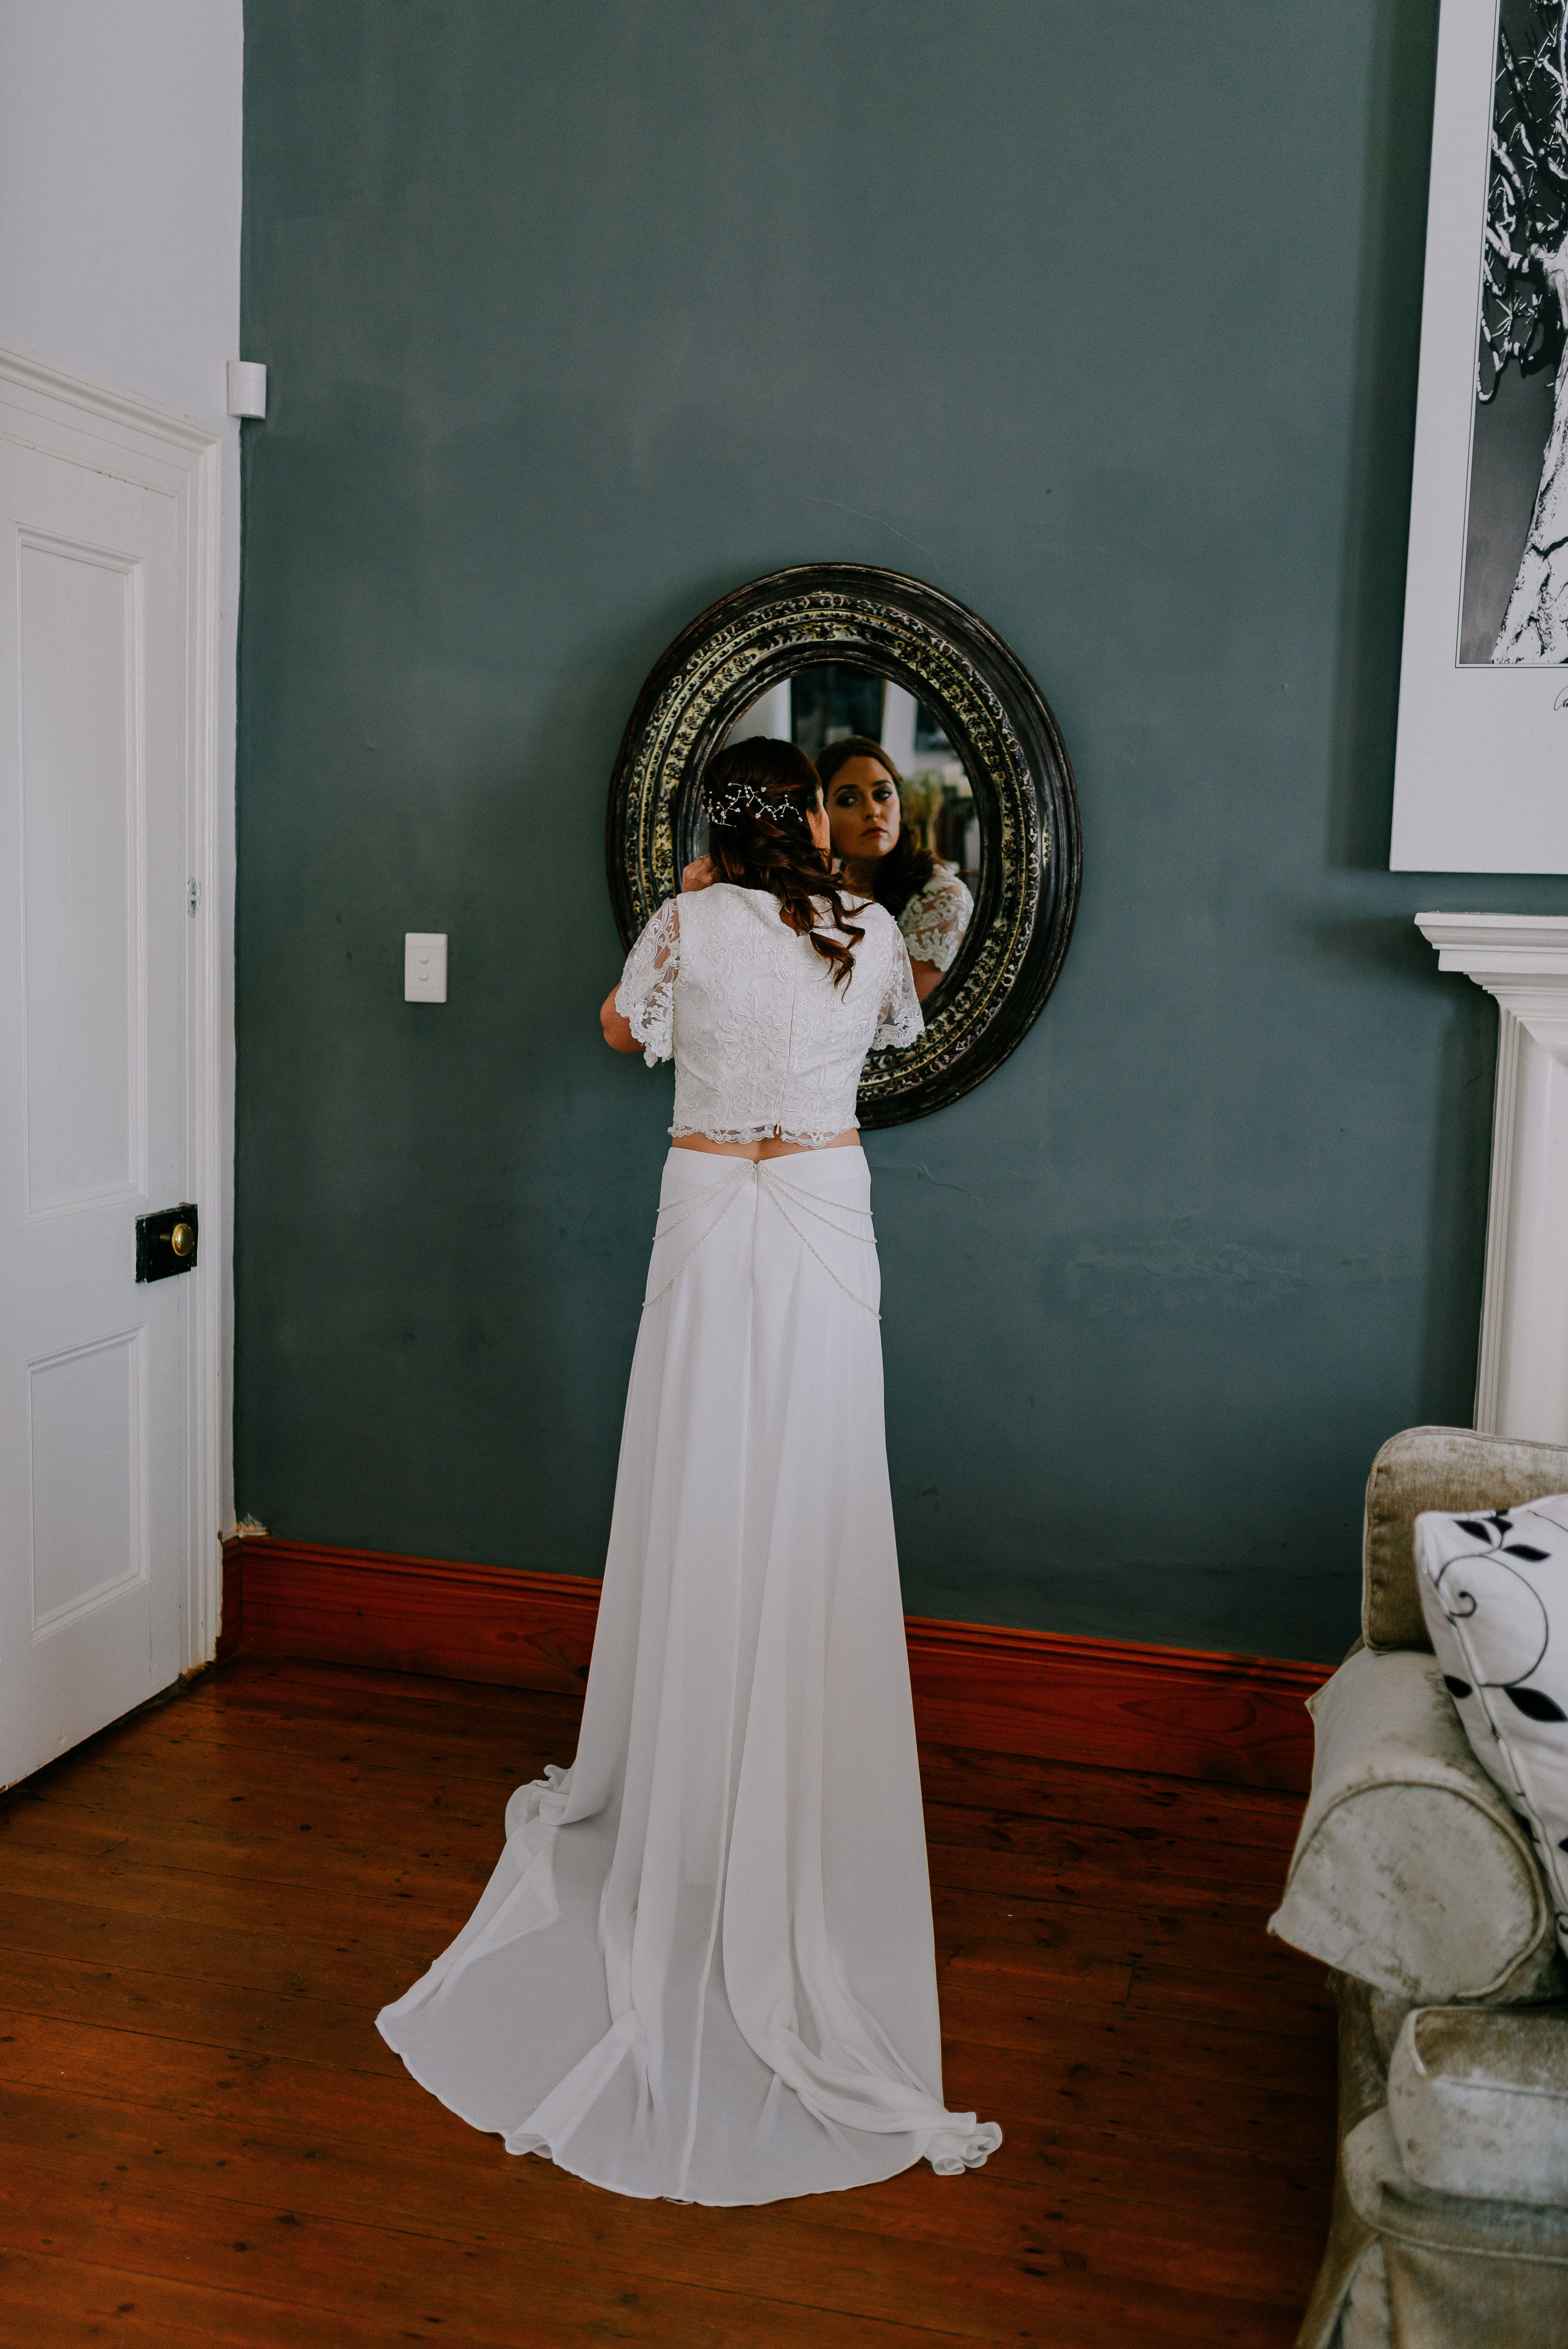 Boho hippie wedding dress  bohemian wedding dress boho wedding dress  One day  Pinterest